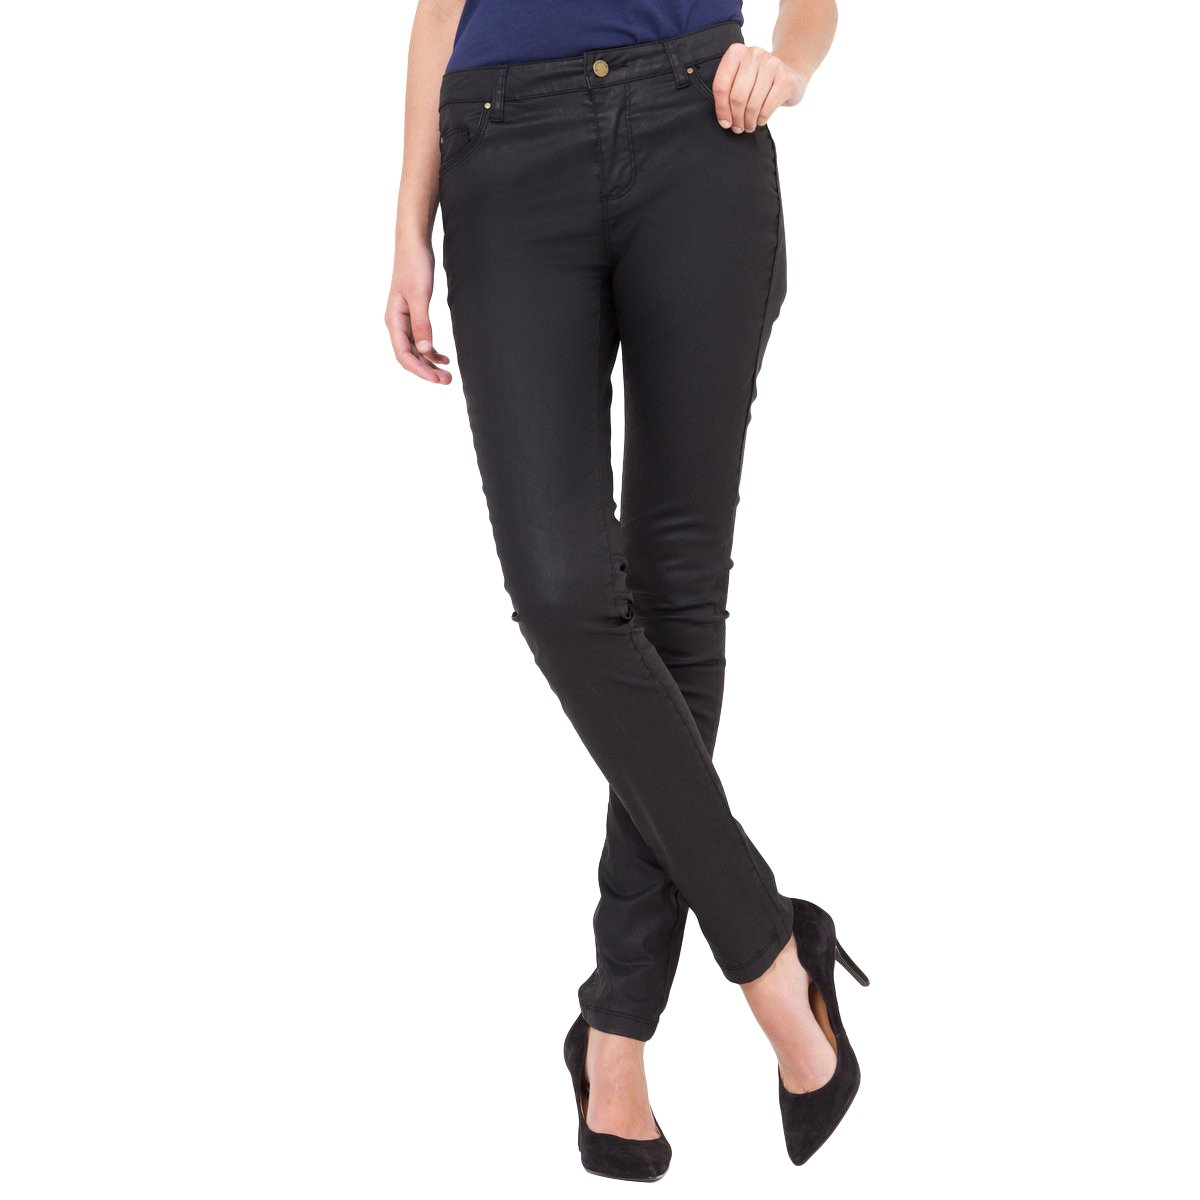 La Redoute Collections Womens Slim-Fit Coated Trousers, Length 32.5 Black Size Us 12 - Fr 42